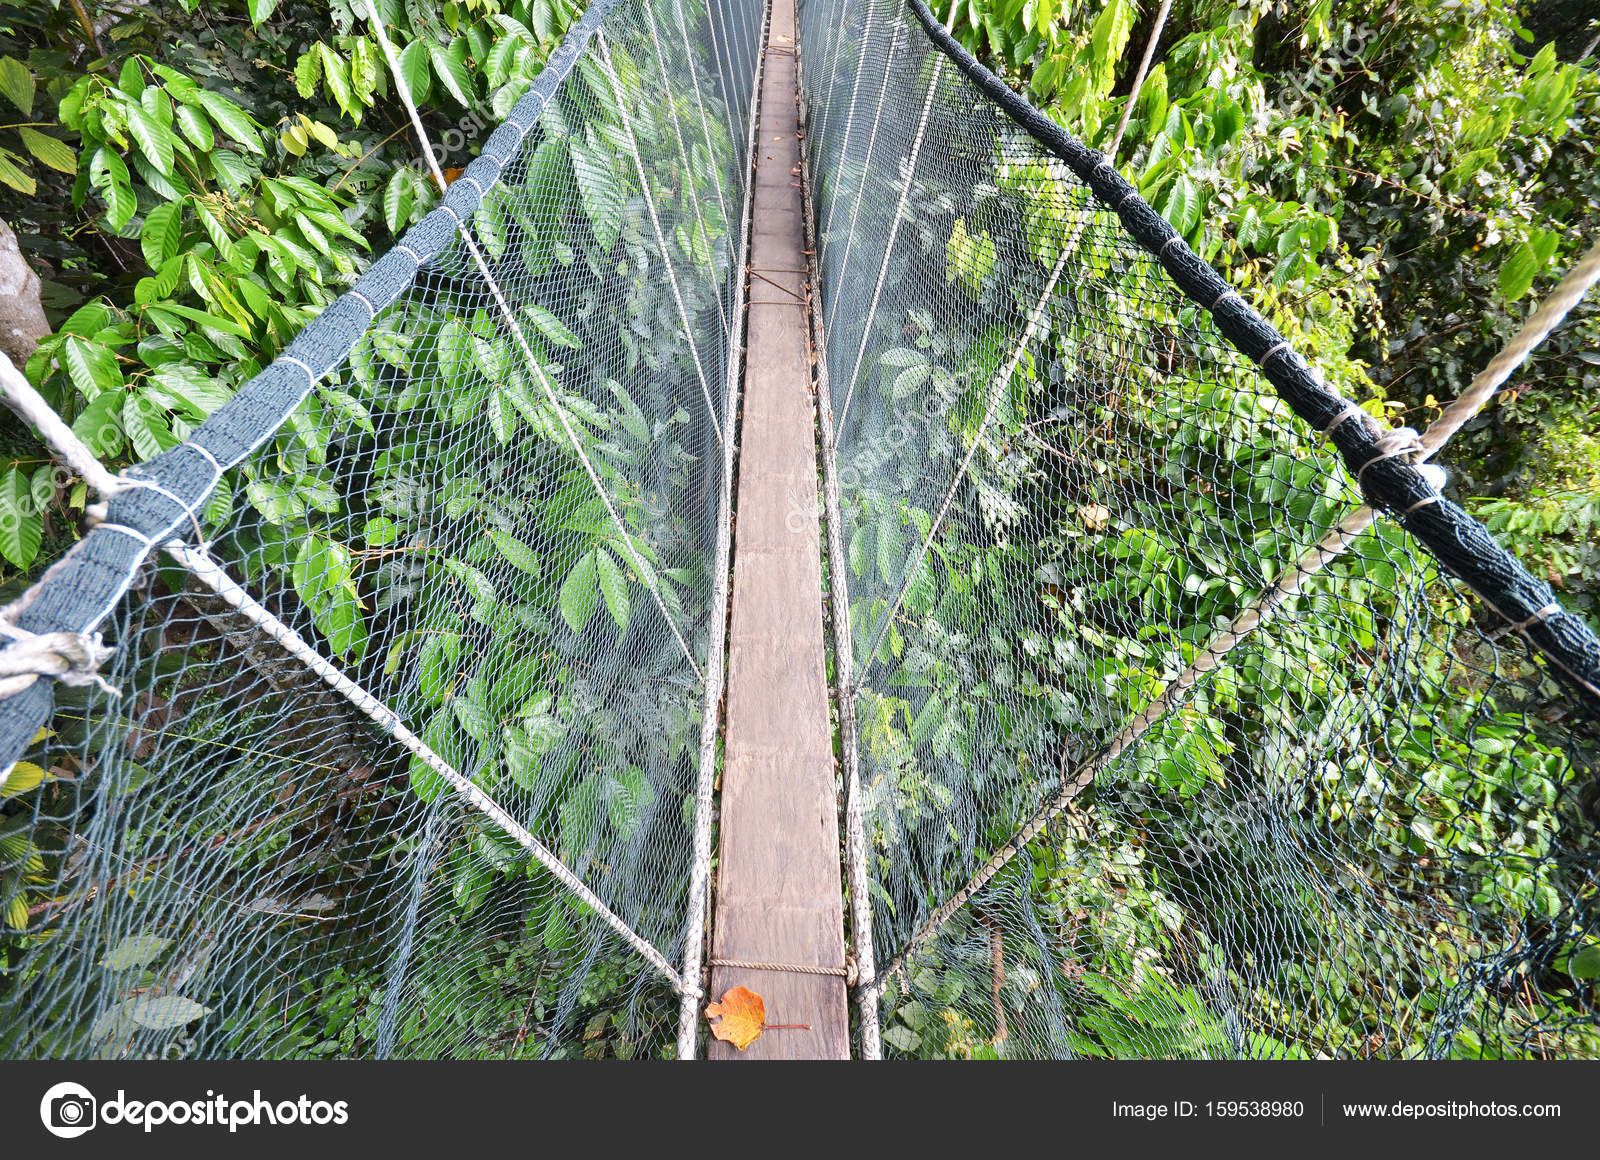 Poring Treetop Canopy Walk u2014 Stock Photo & Poring Treetop Canopy Walk u2014 Stock Photo © tang90246 #159538980